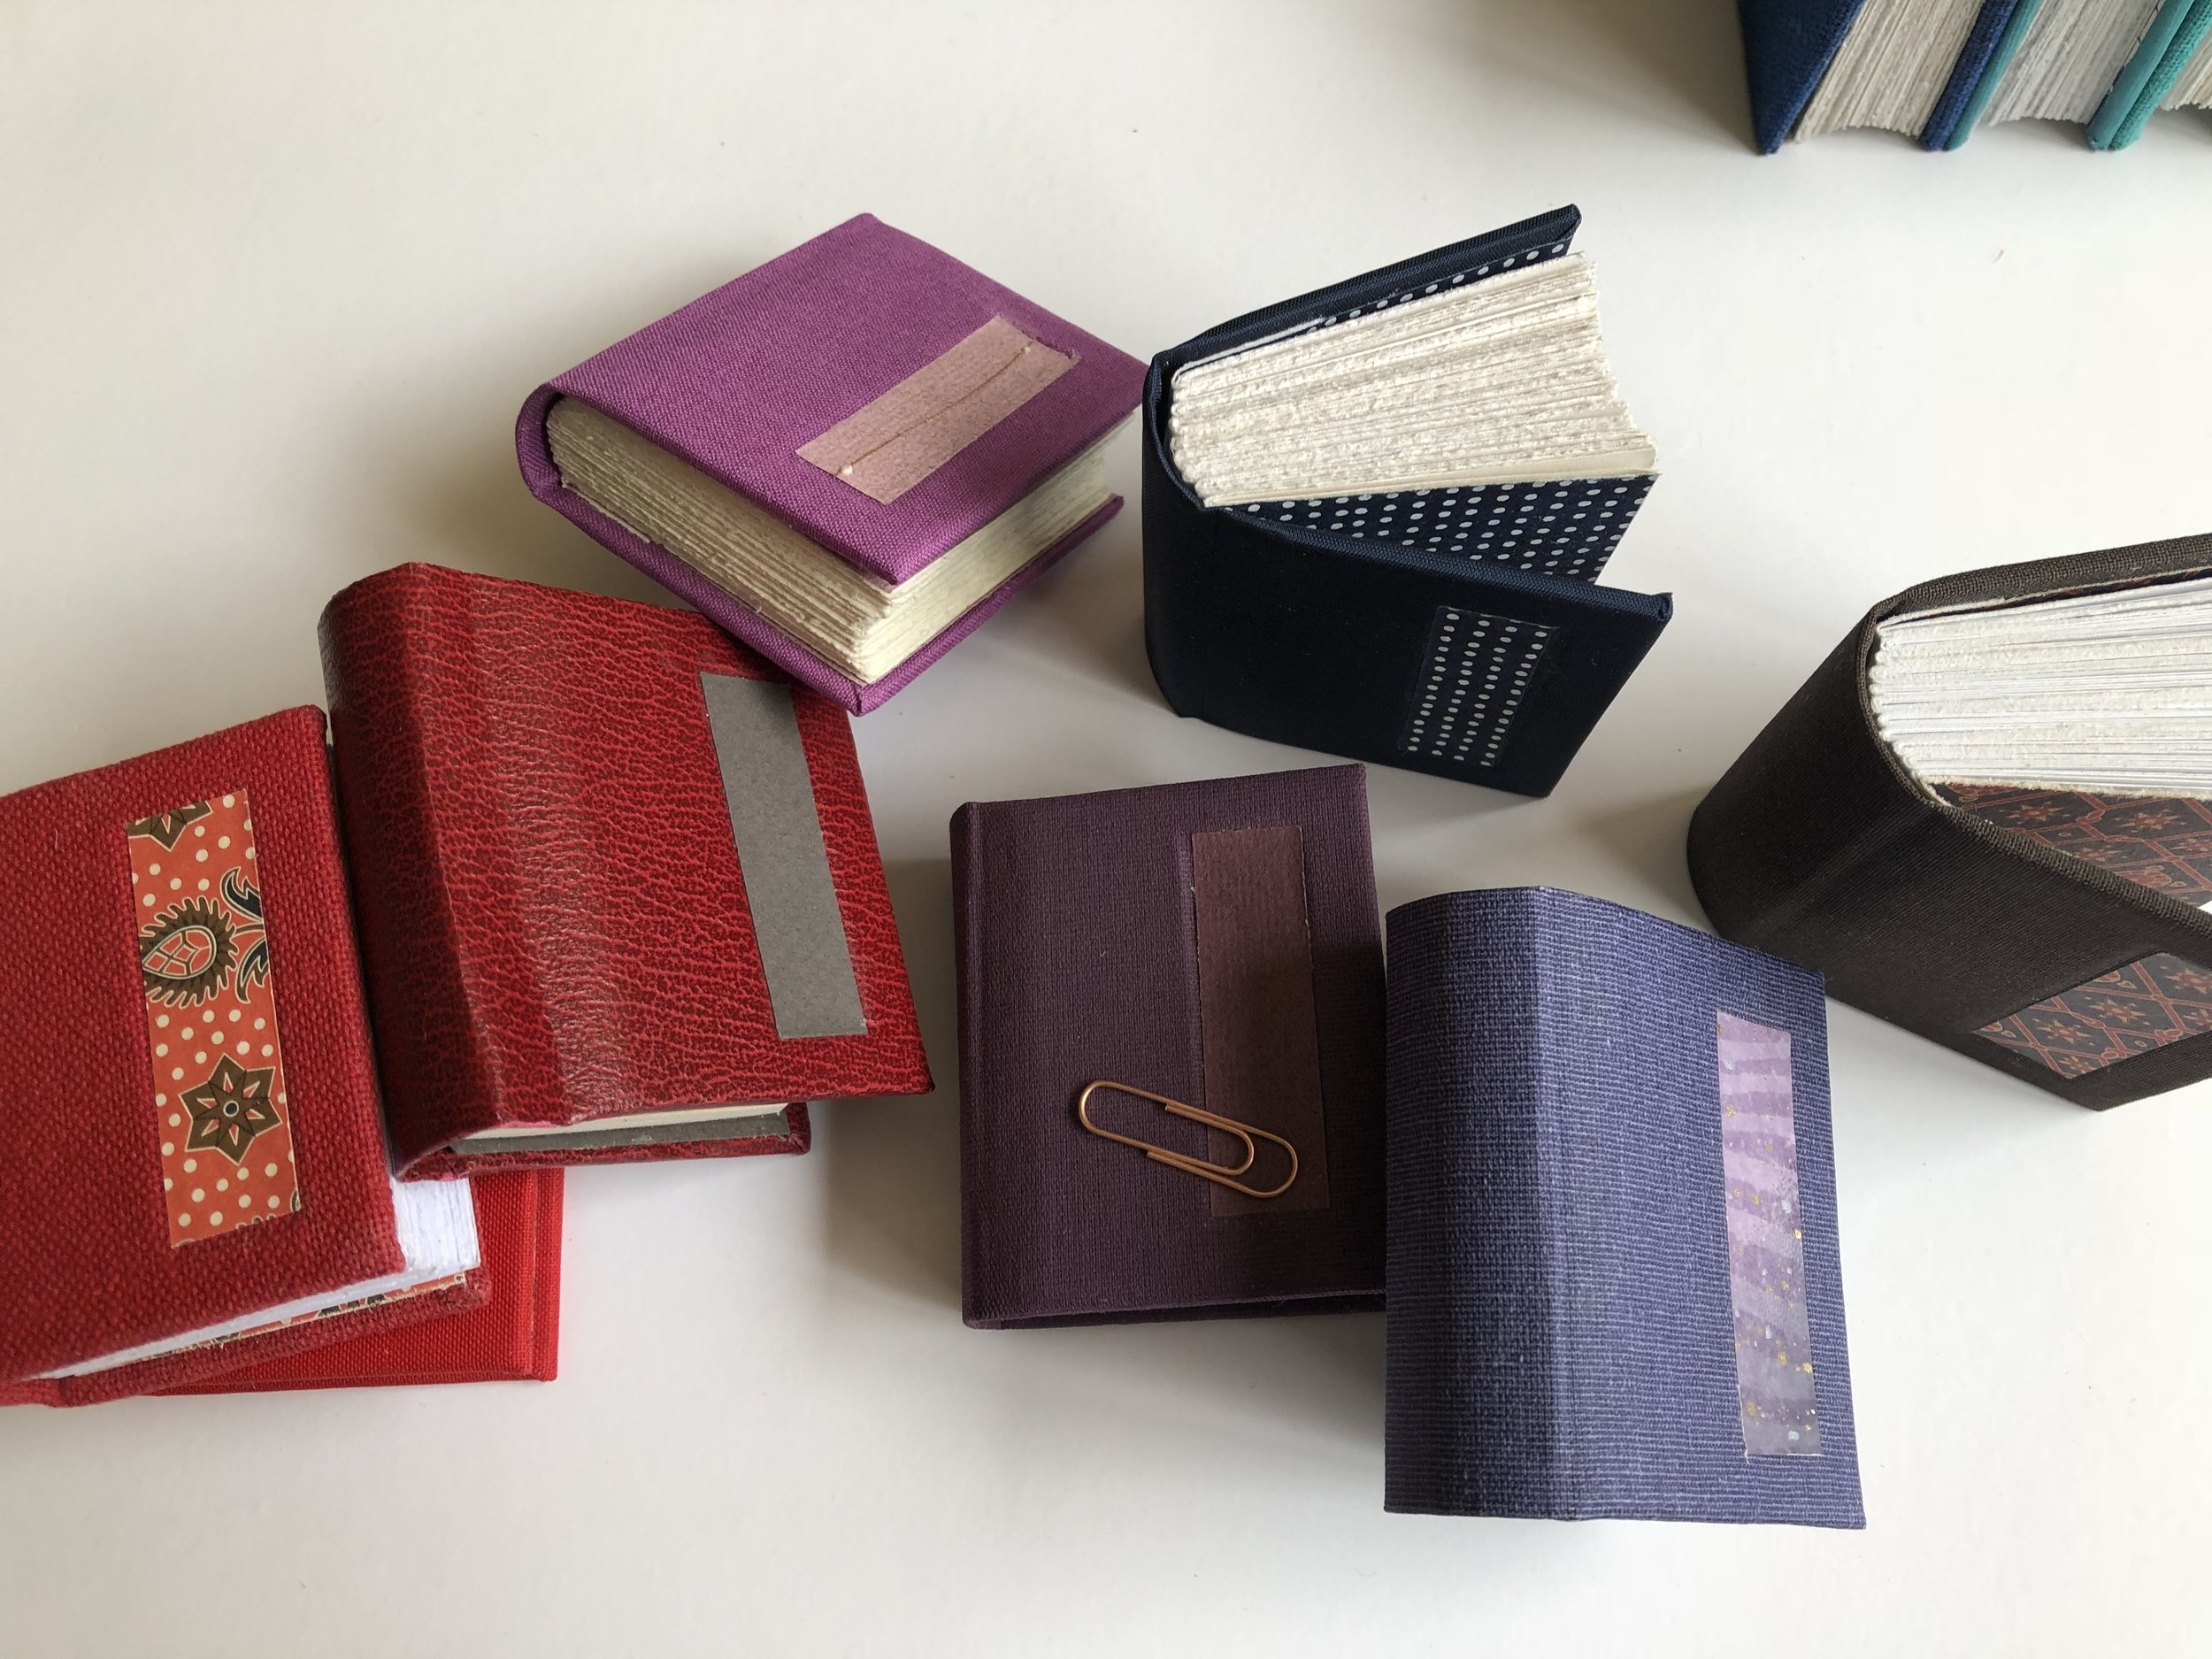 COLLECTION OF MINIATURE BOOKS